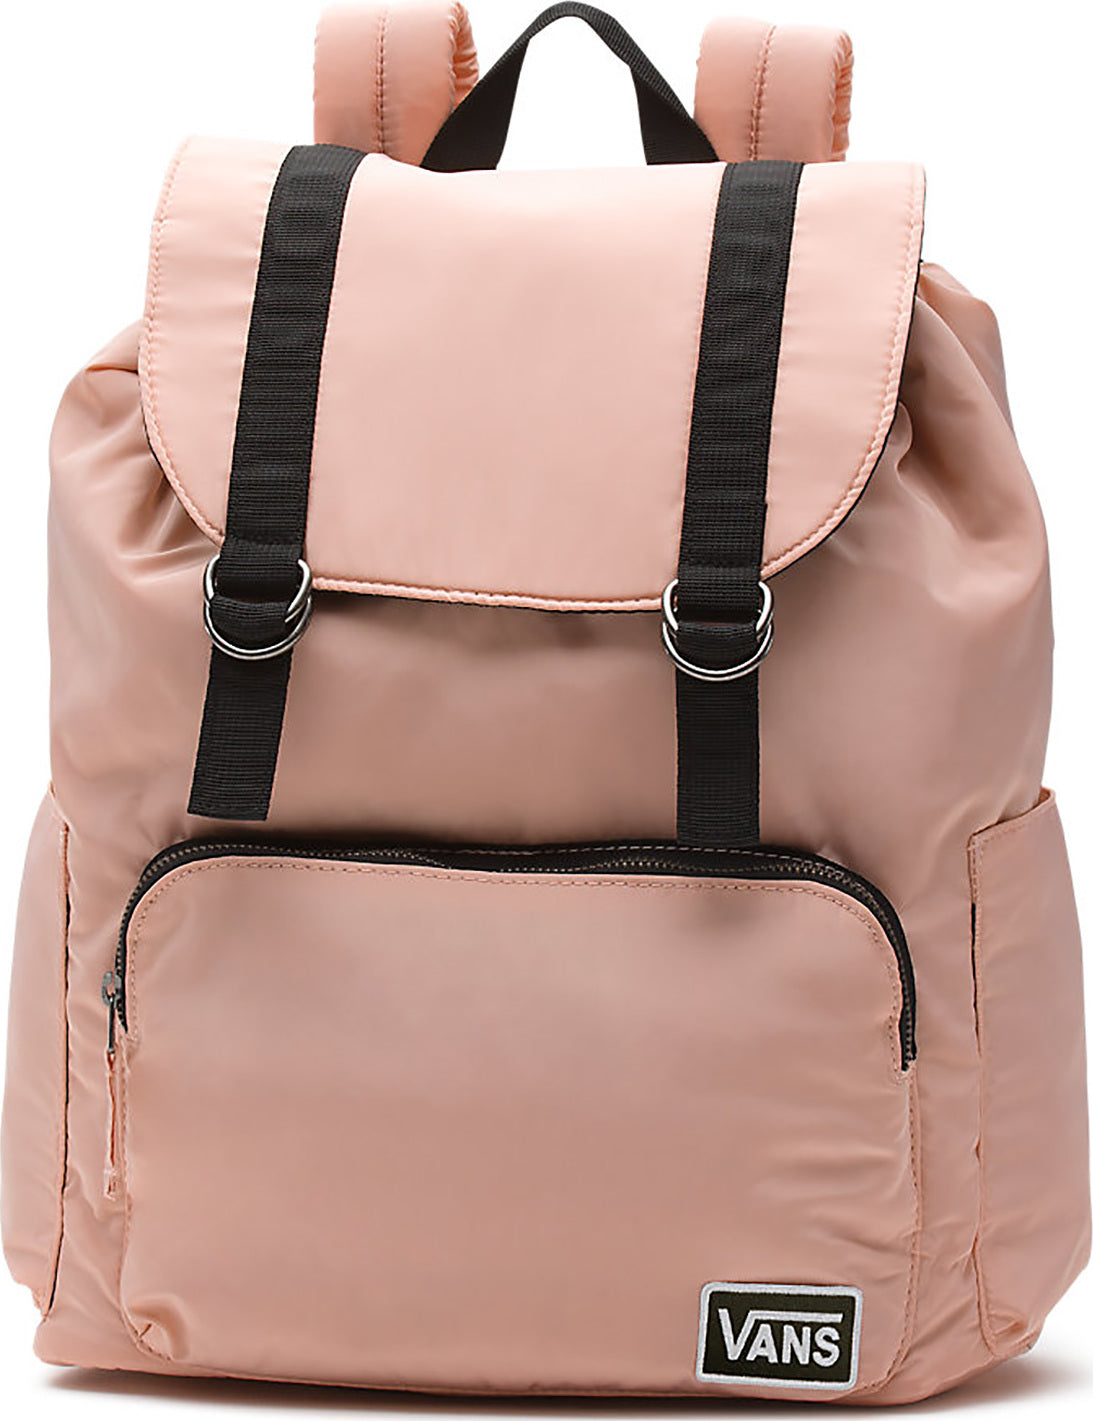 e5ead0856e5aec Vans Women s Geomancer Backpack